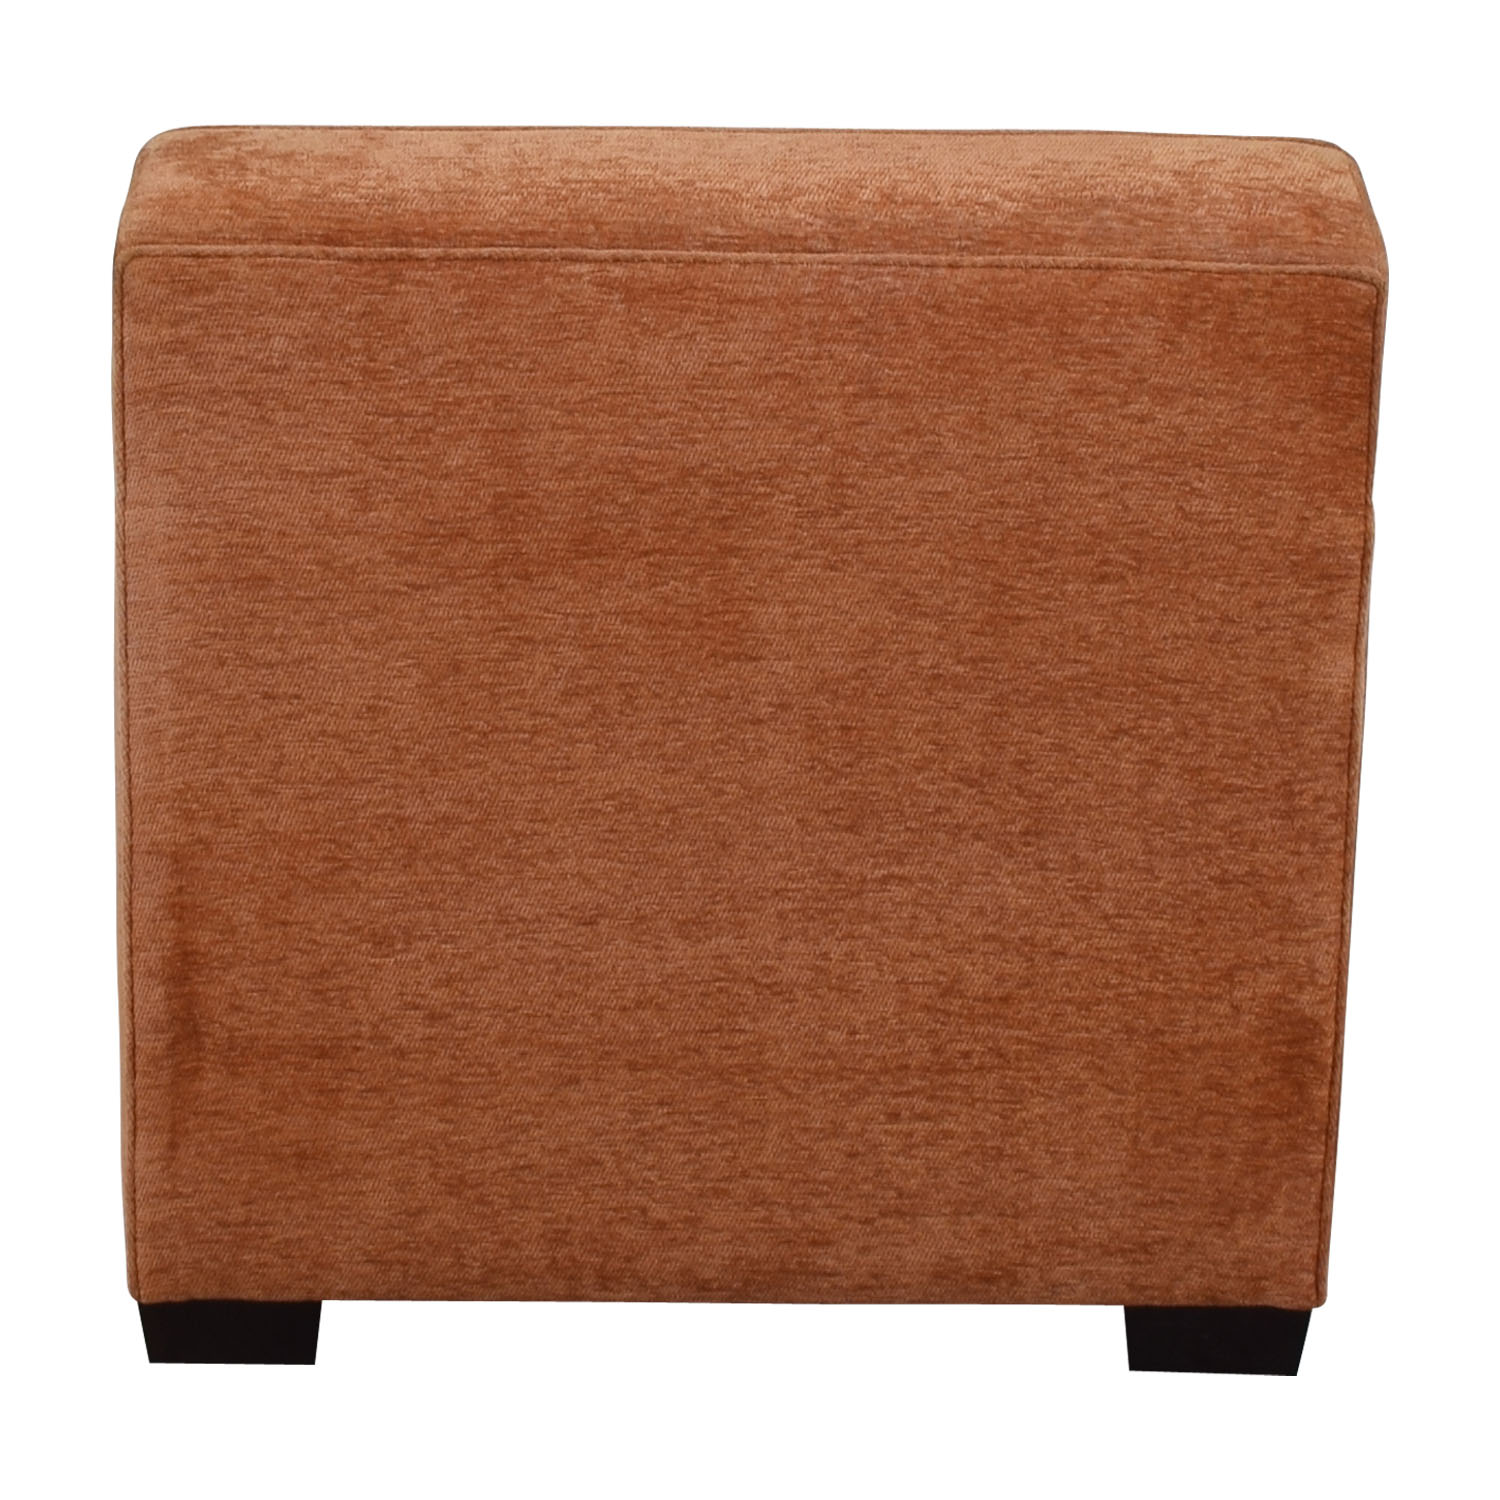 shop Furniture Masters Brown Orange Upholstered Club Chair Furniture Masters Chairs